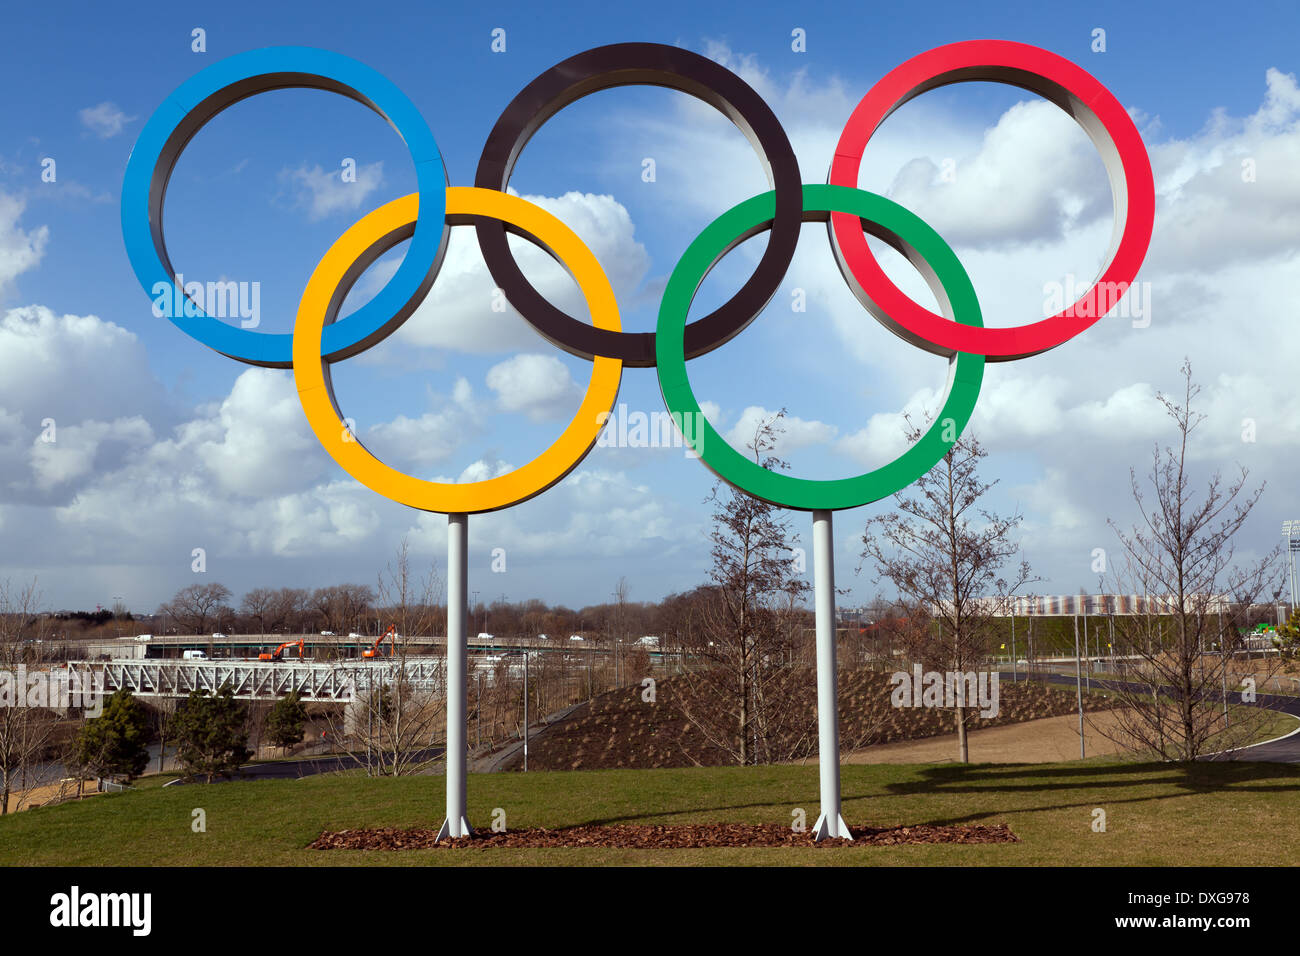 The Symbol Of The Olympic Games Five Interlocking Rings Colored